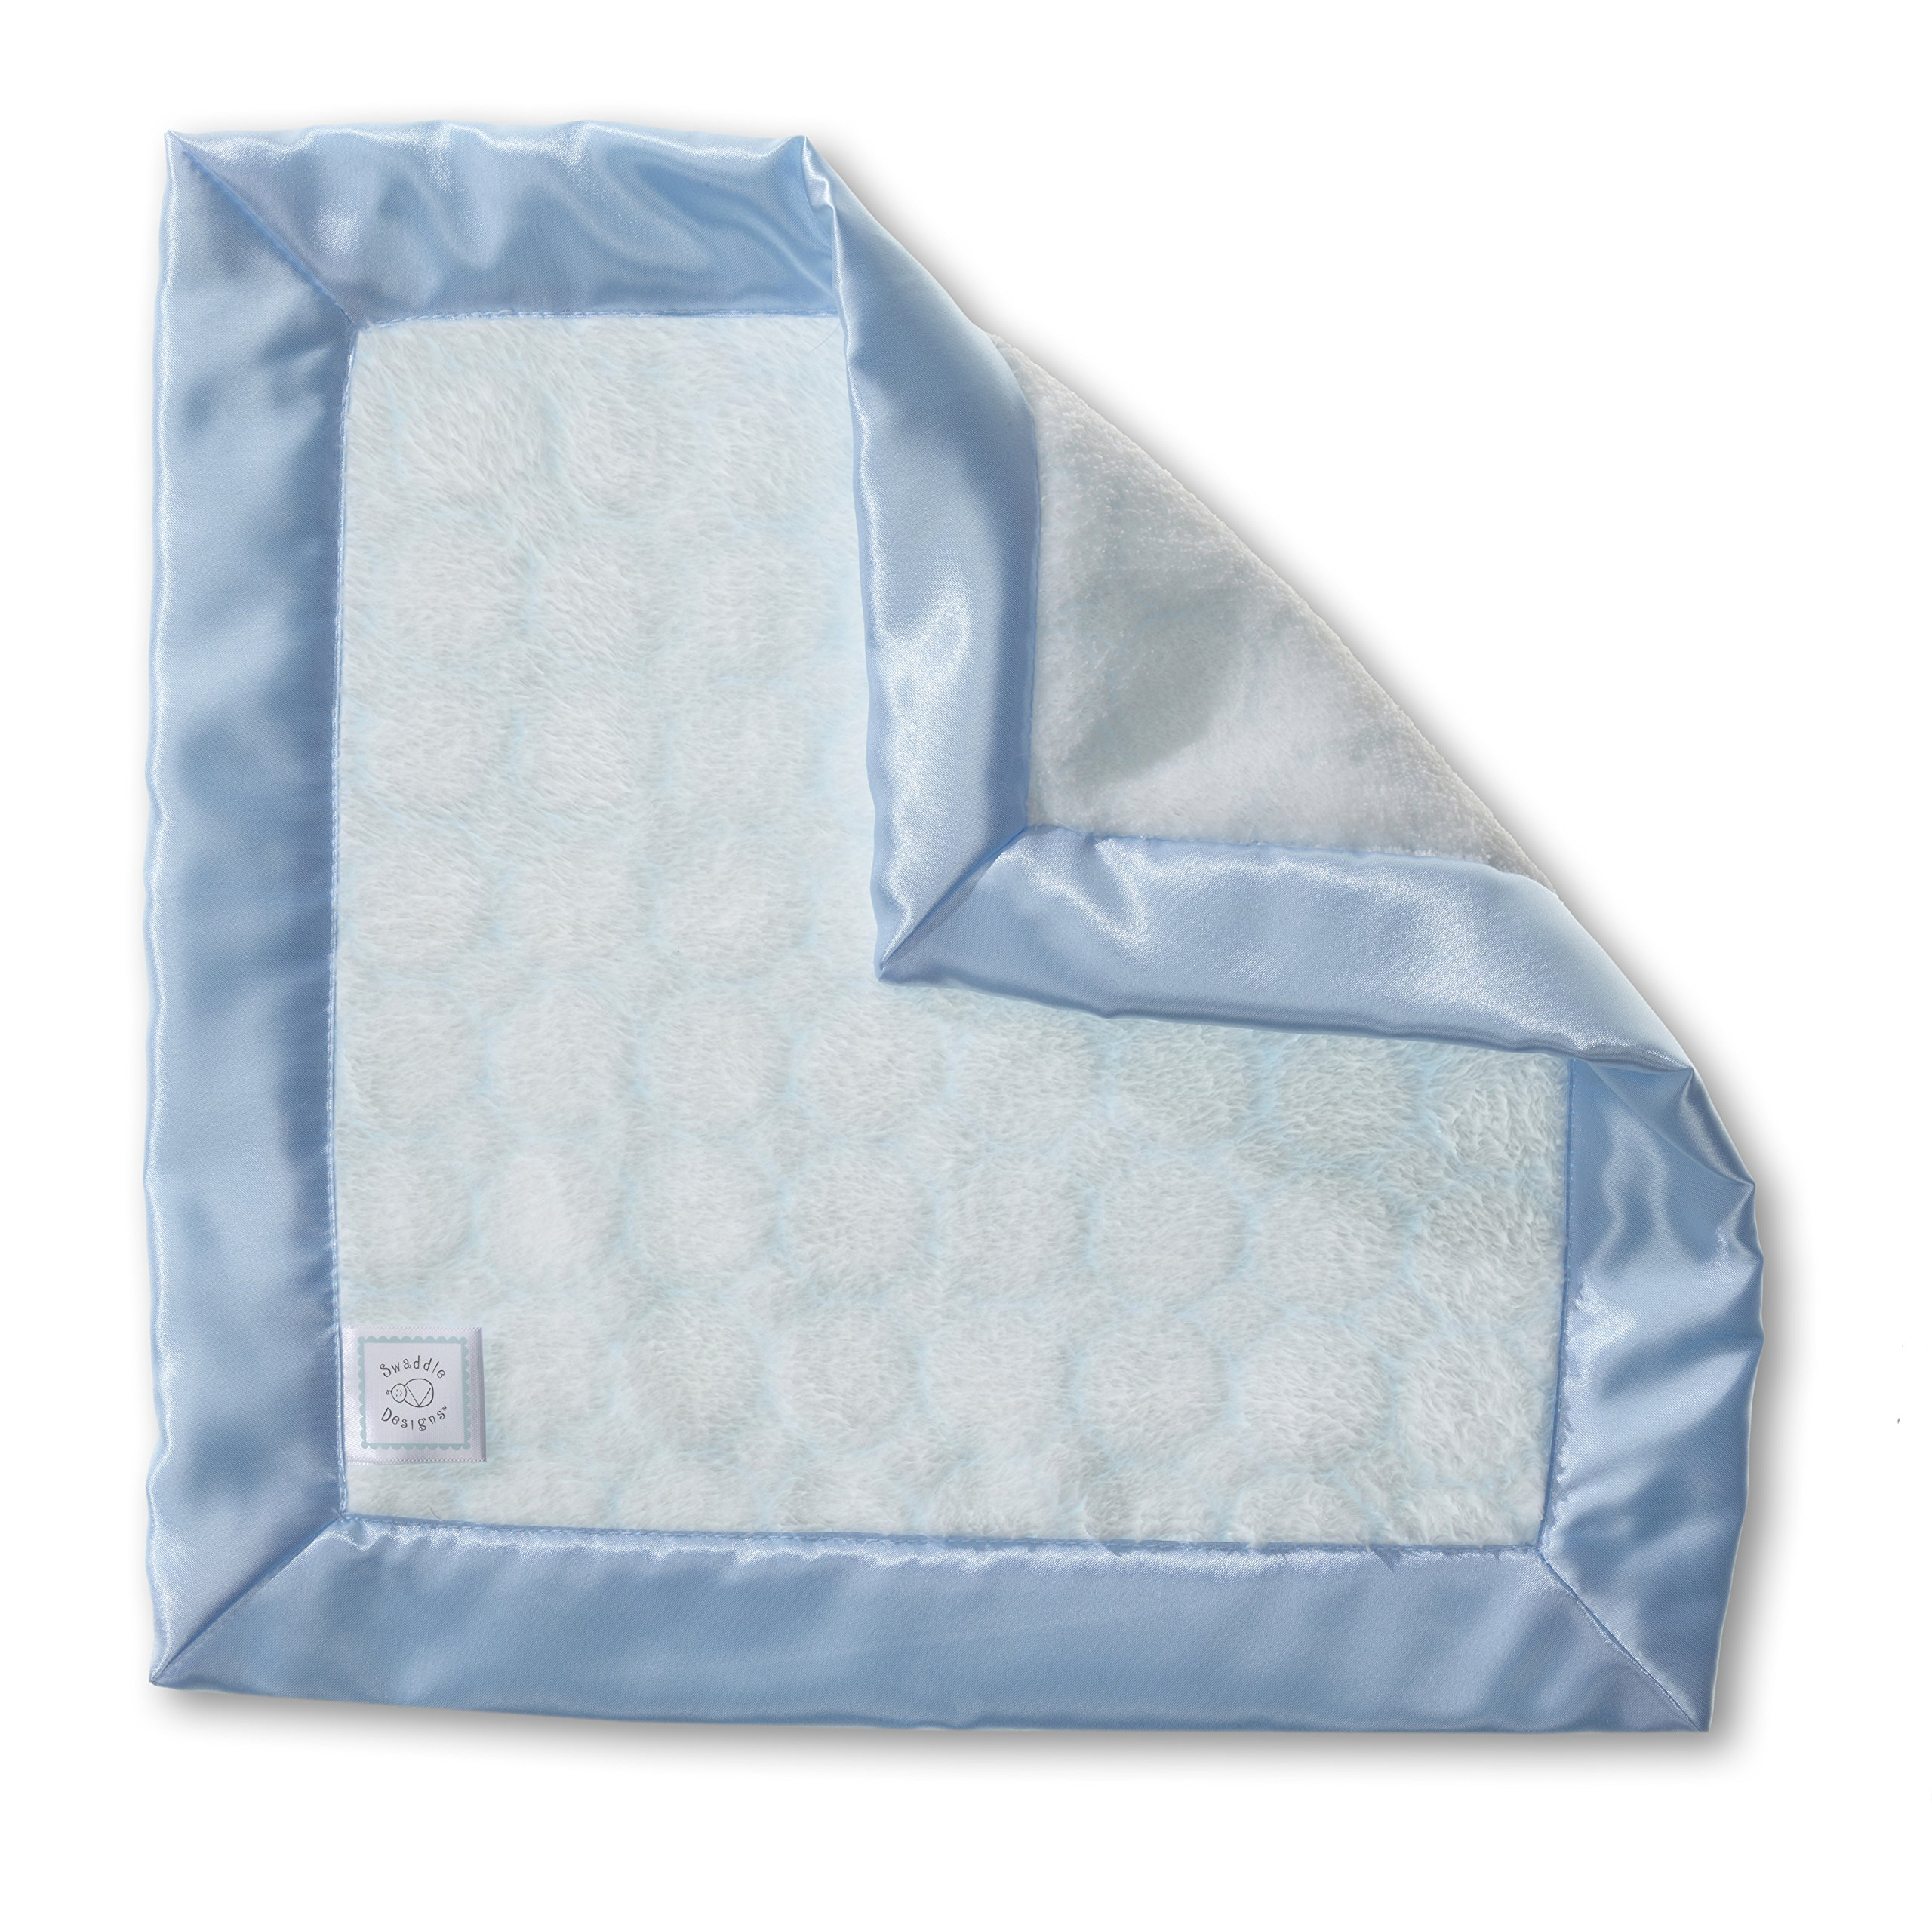 SwaddleDesigns Baby Lovie, Small Security Blanket, Puff Circles with Satin Trim, Pastel Blue